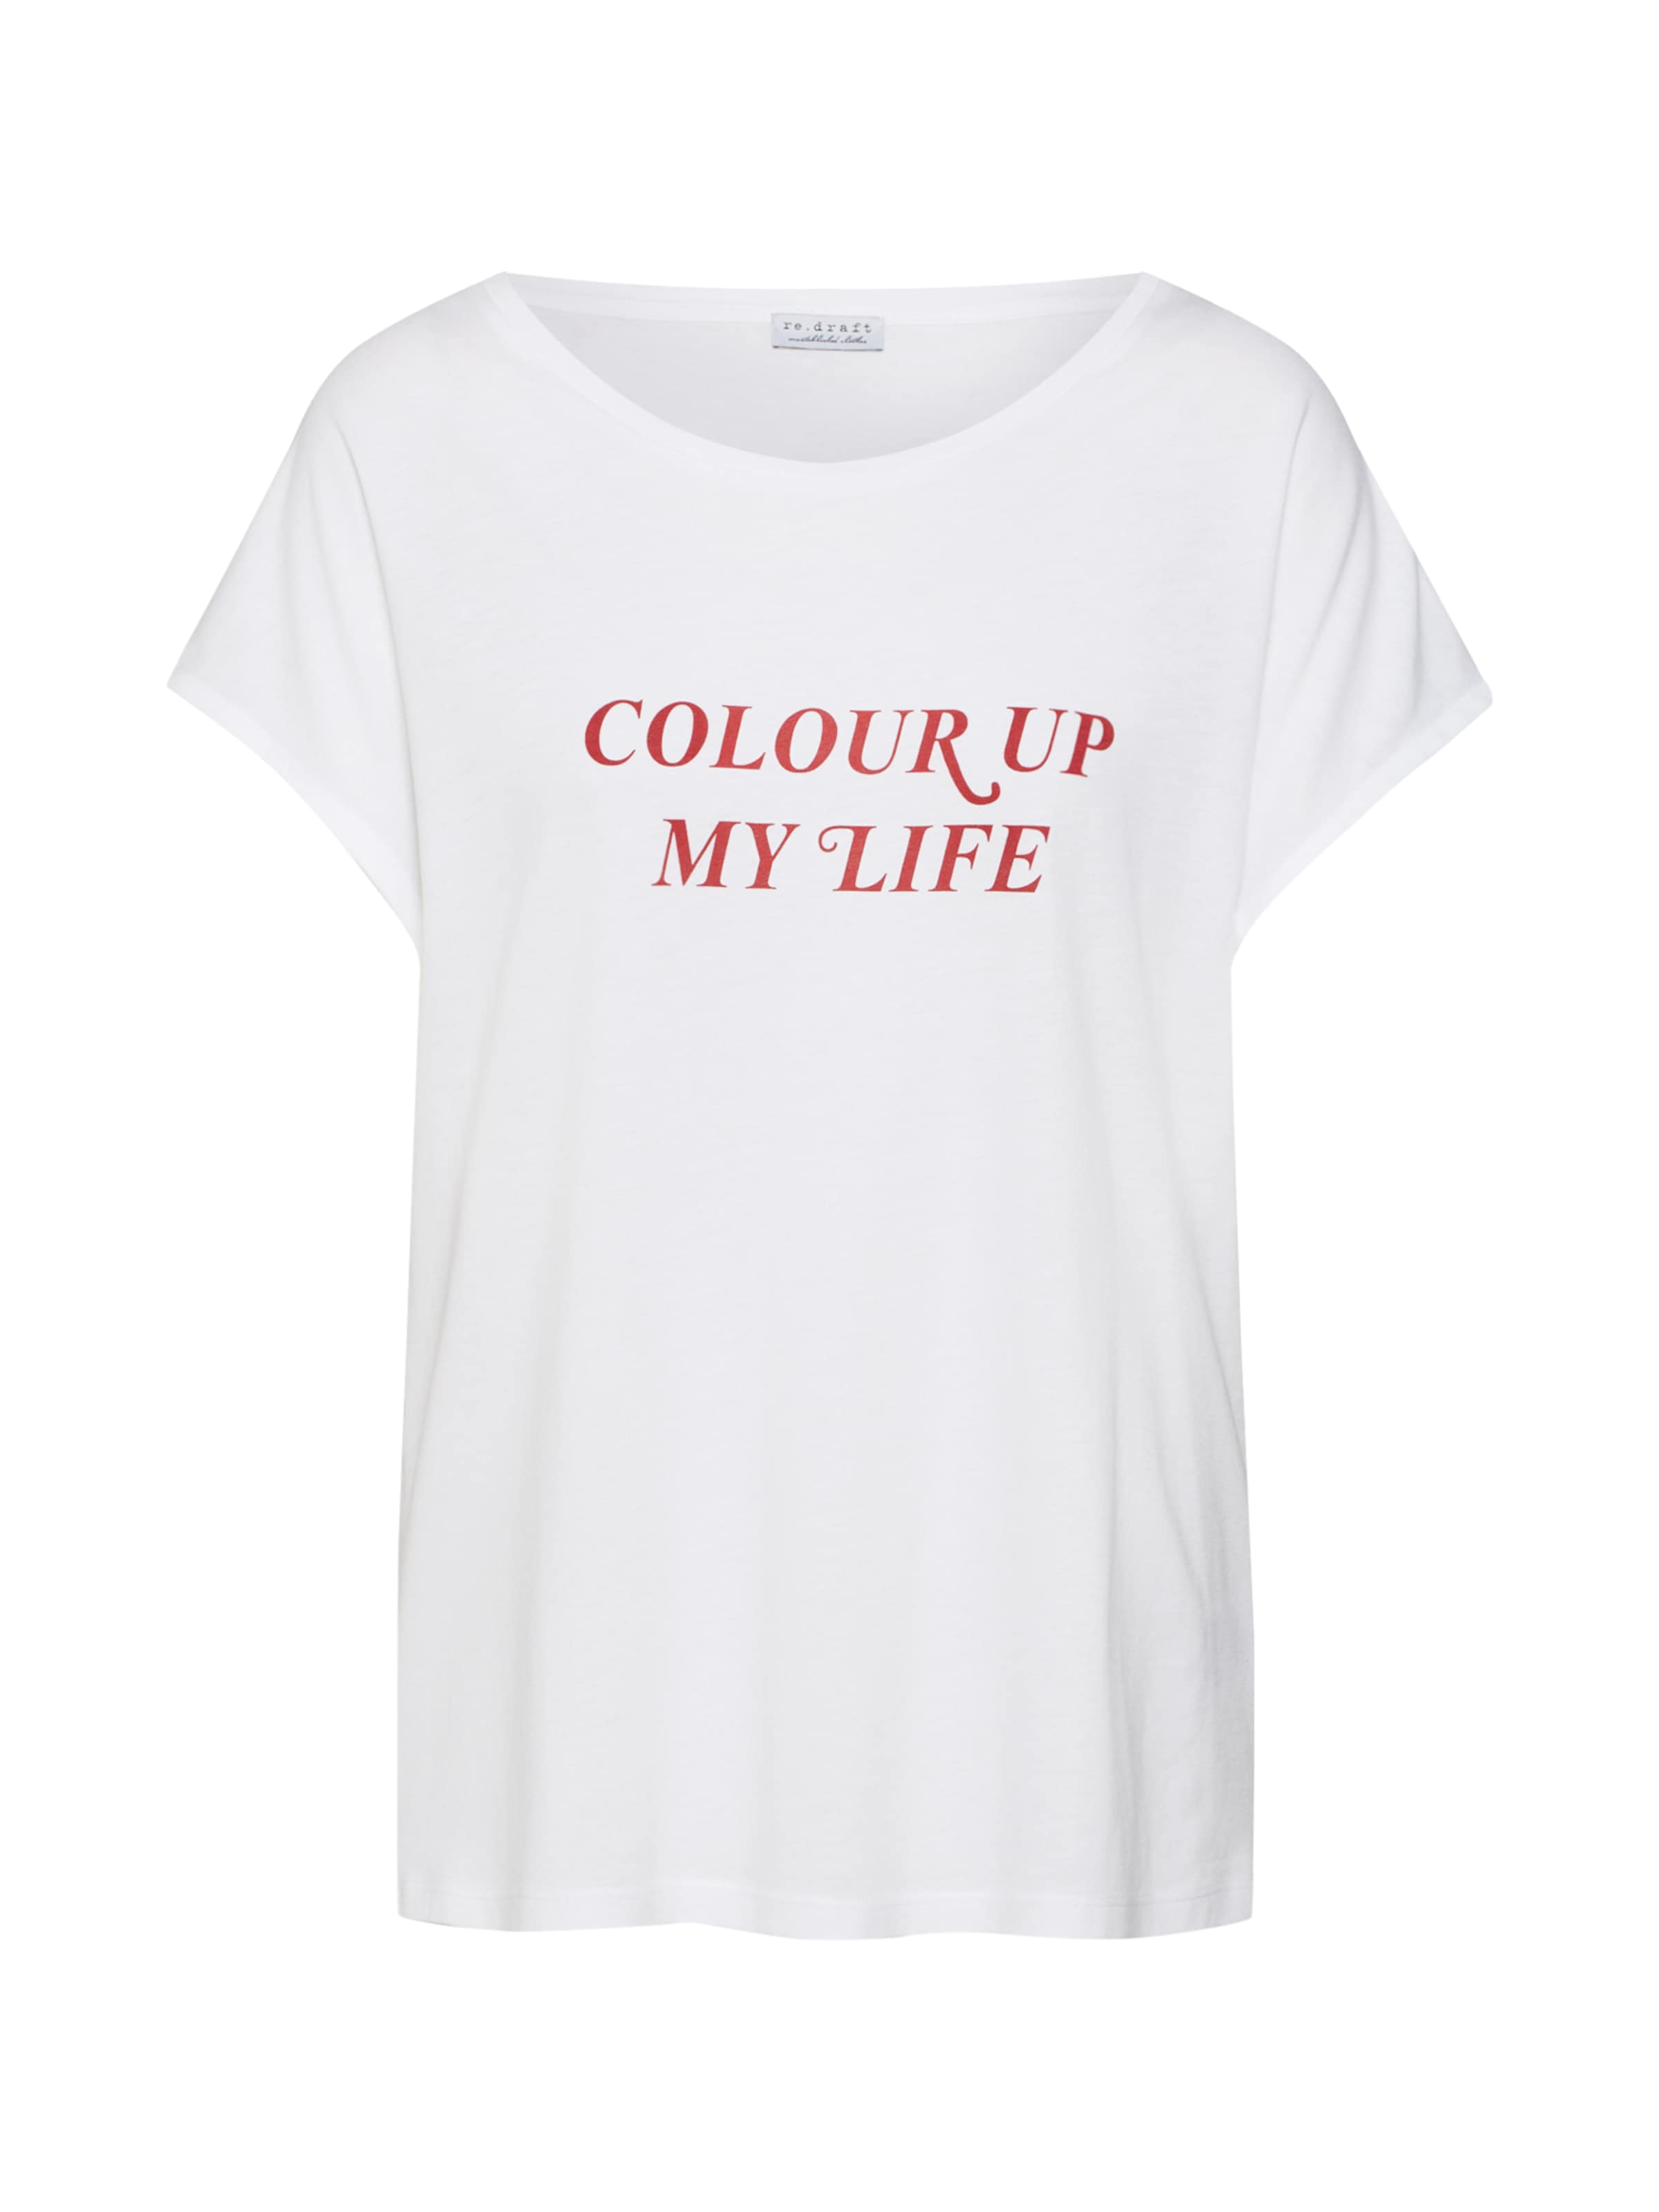 draft Rouge En T Re shirt Blanc STdqqF